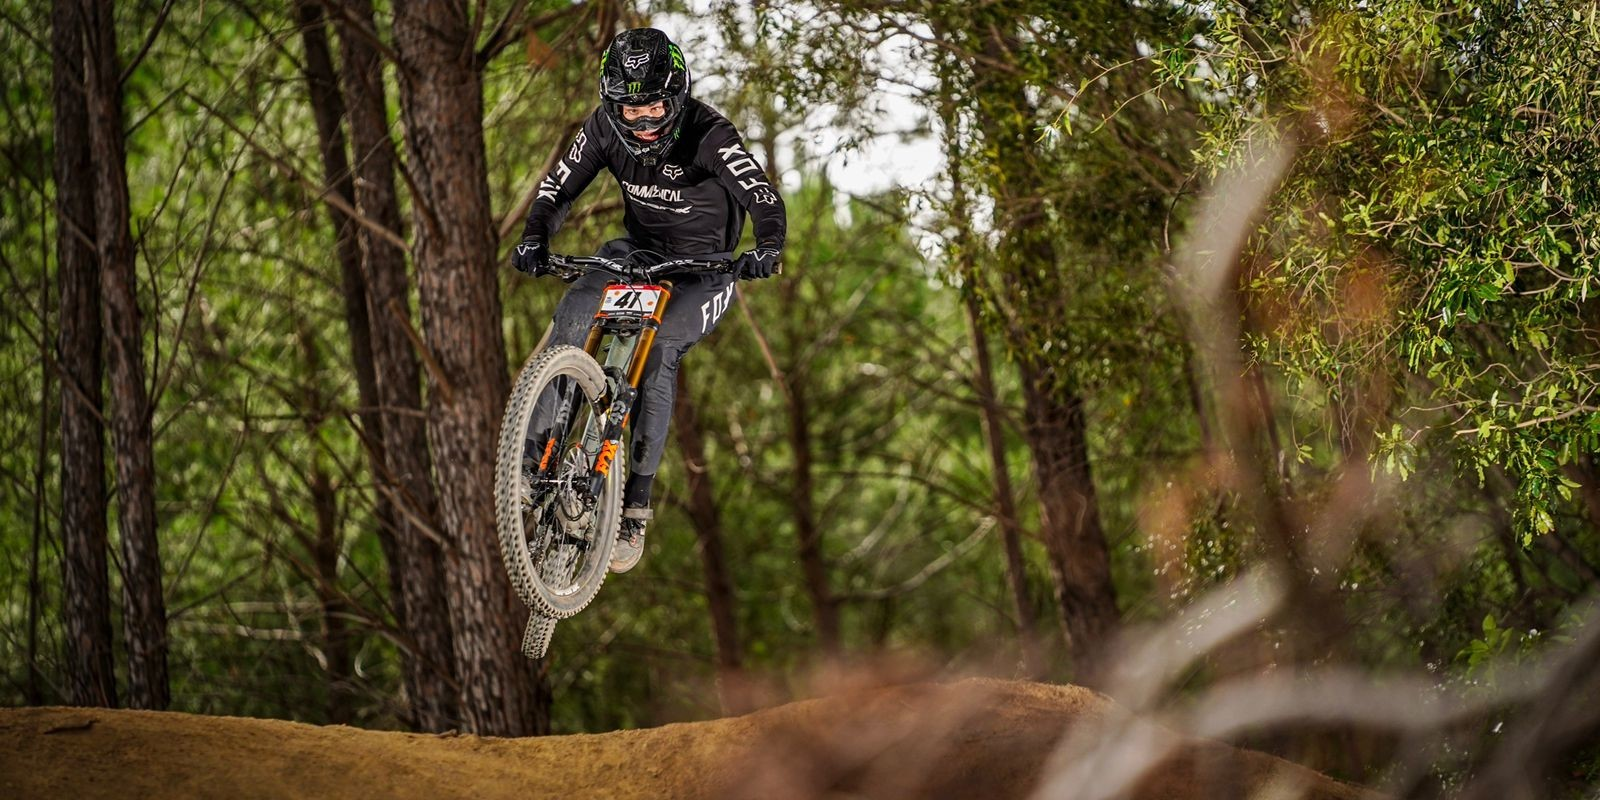 Theo Erlangsen & Ike Klaassen take the win at Downhill MTB SA Champs in Paarl, South Africa